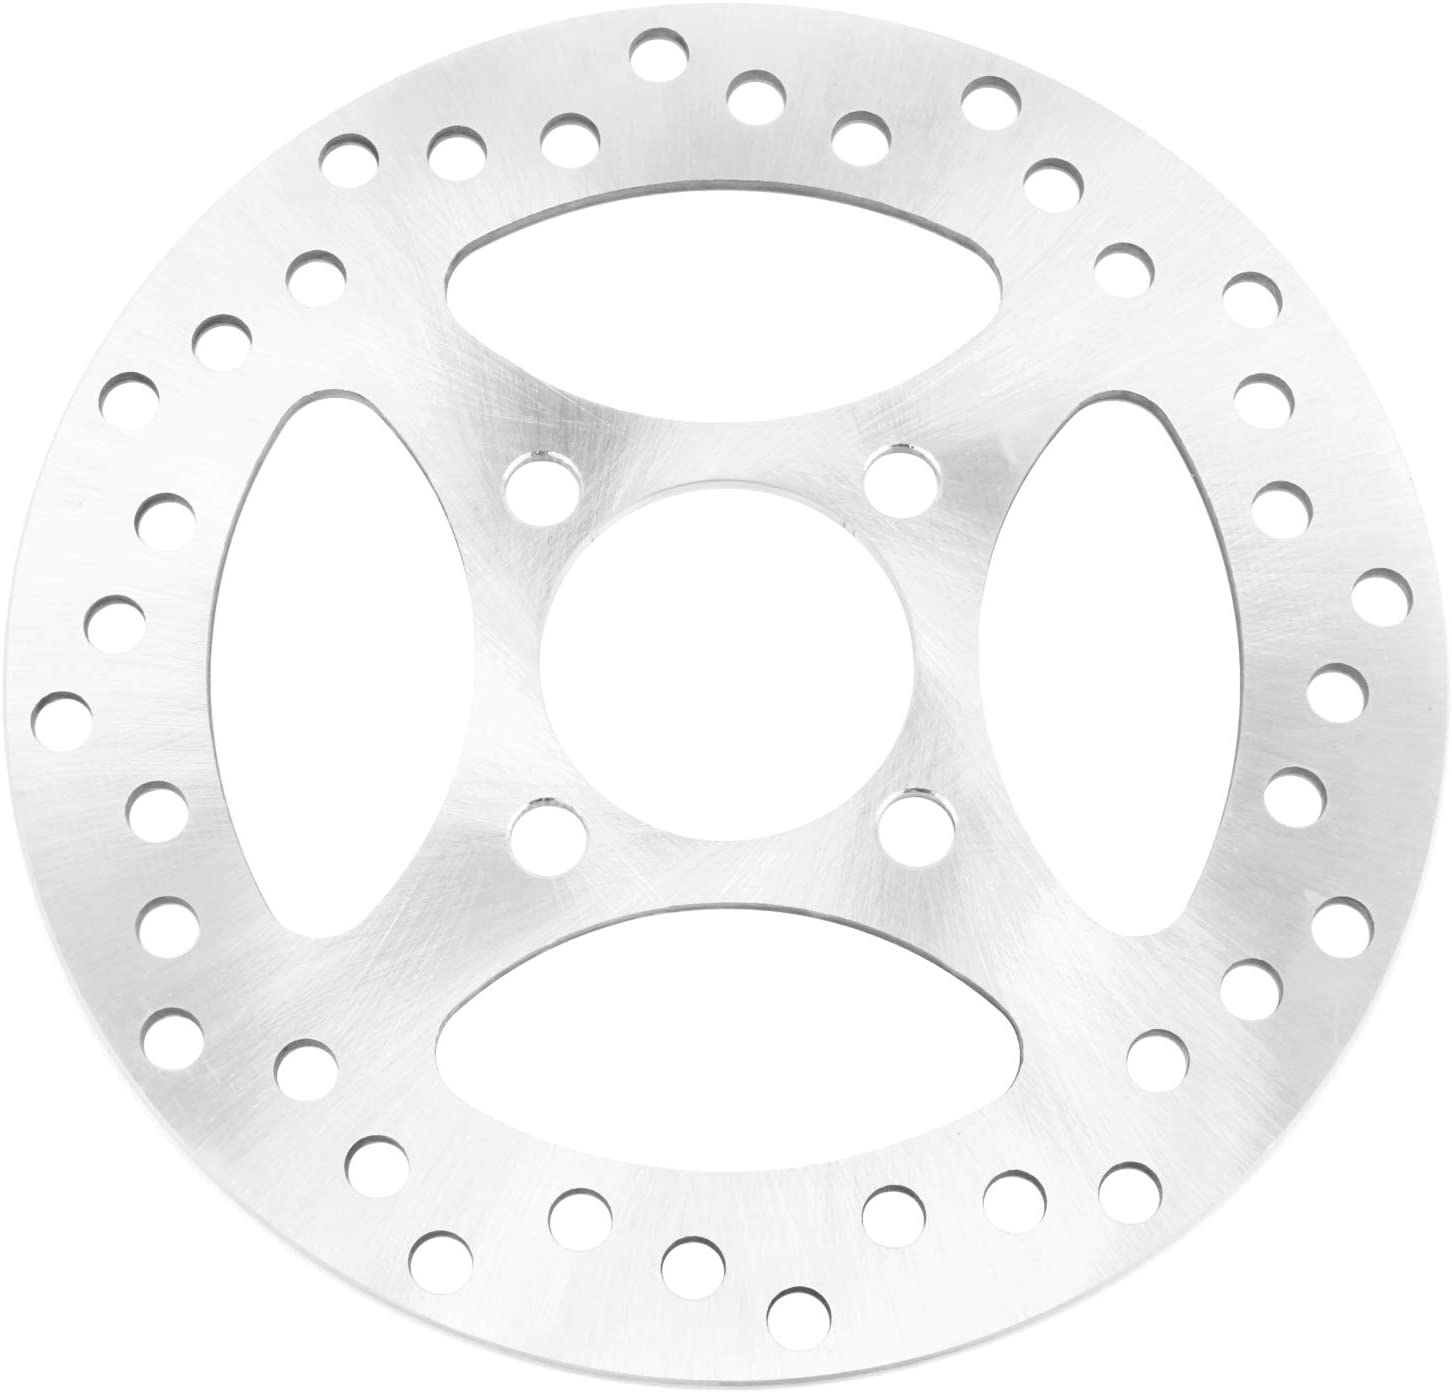 New arrival Dedication Caltric Rear Brake Disc Rotor Compatible Raptor with Yamaha 700